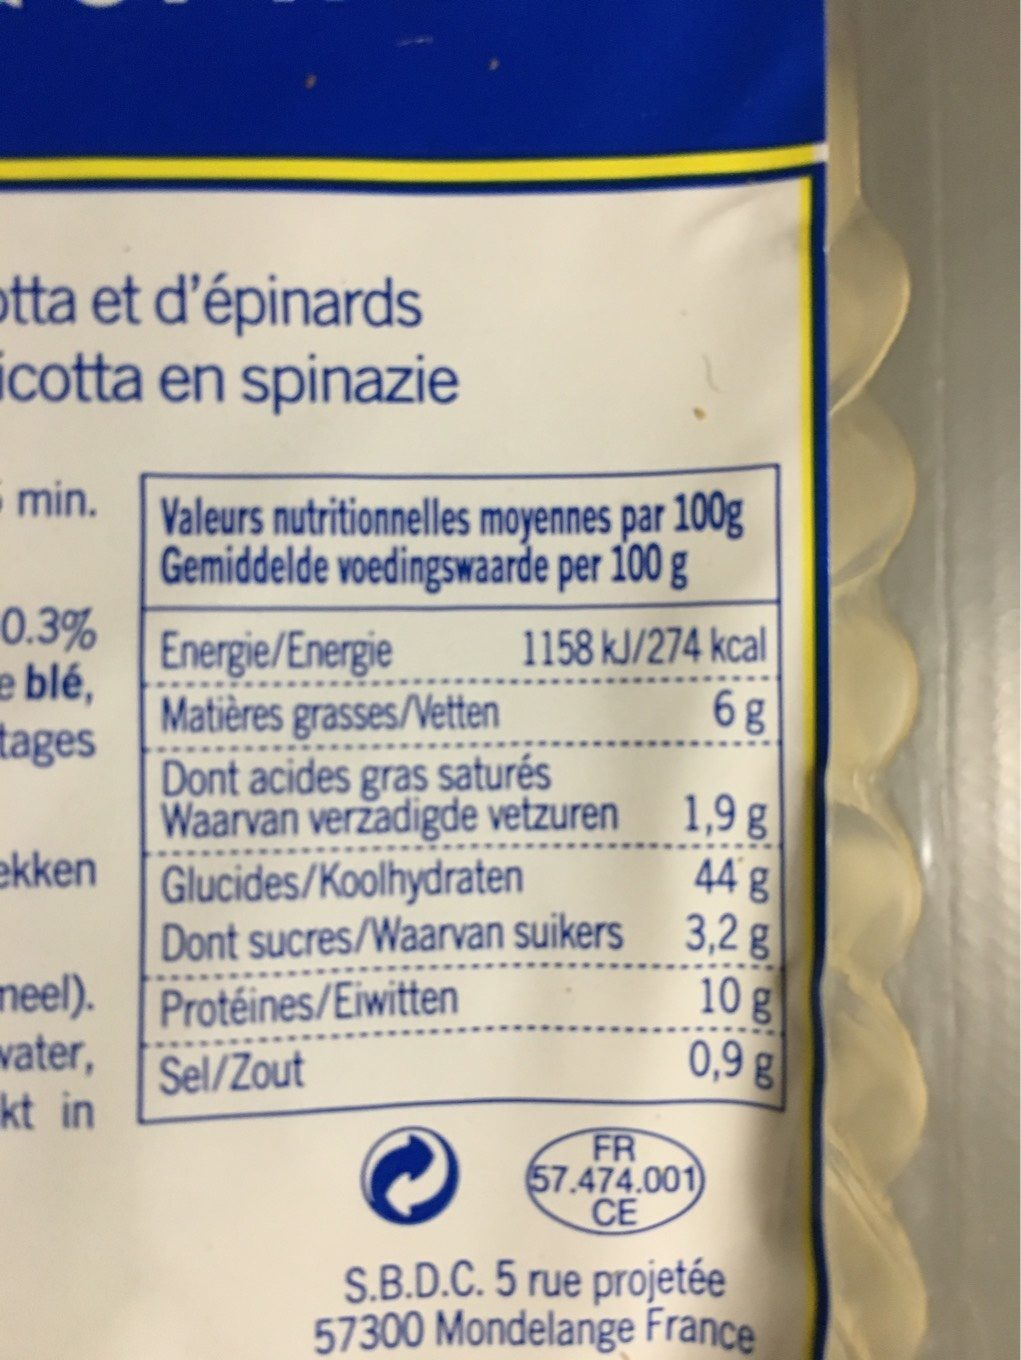 Tortelloni ricotta & Spinaci - Nutrition facts